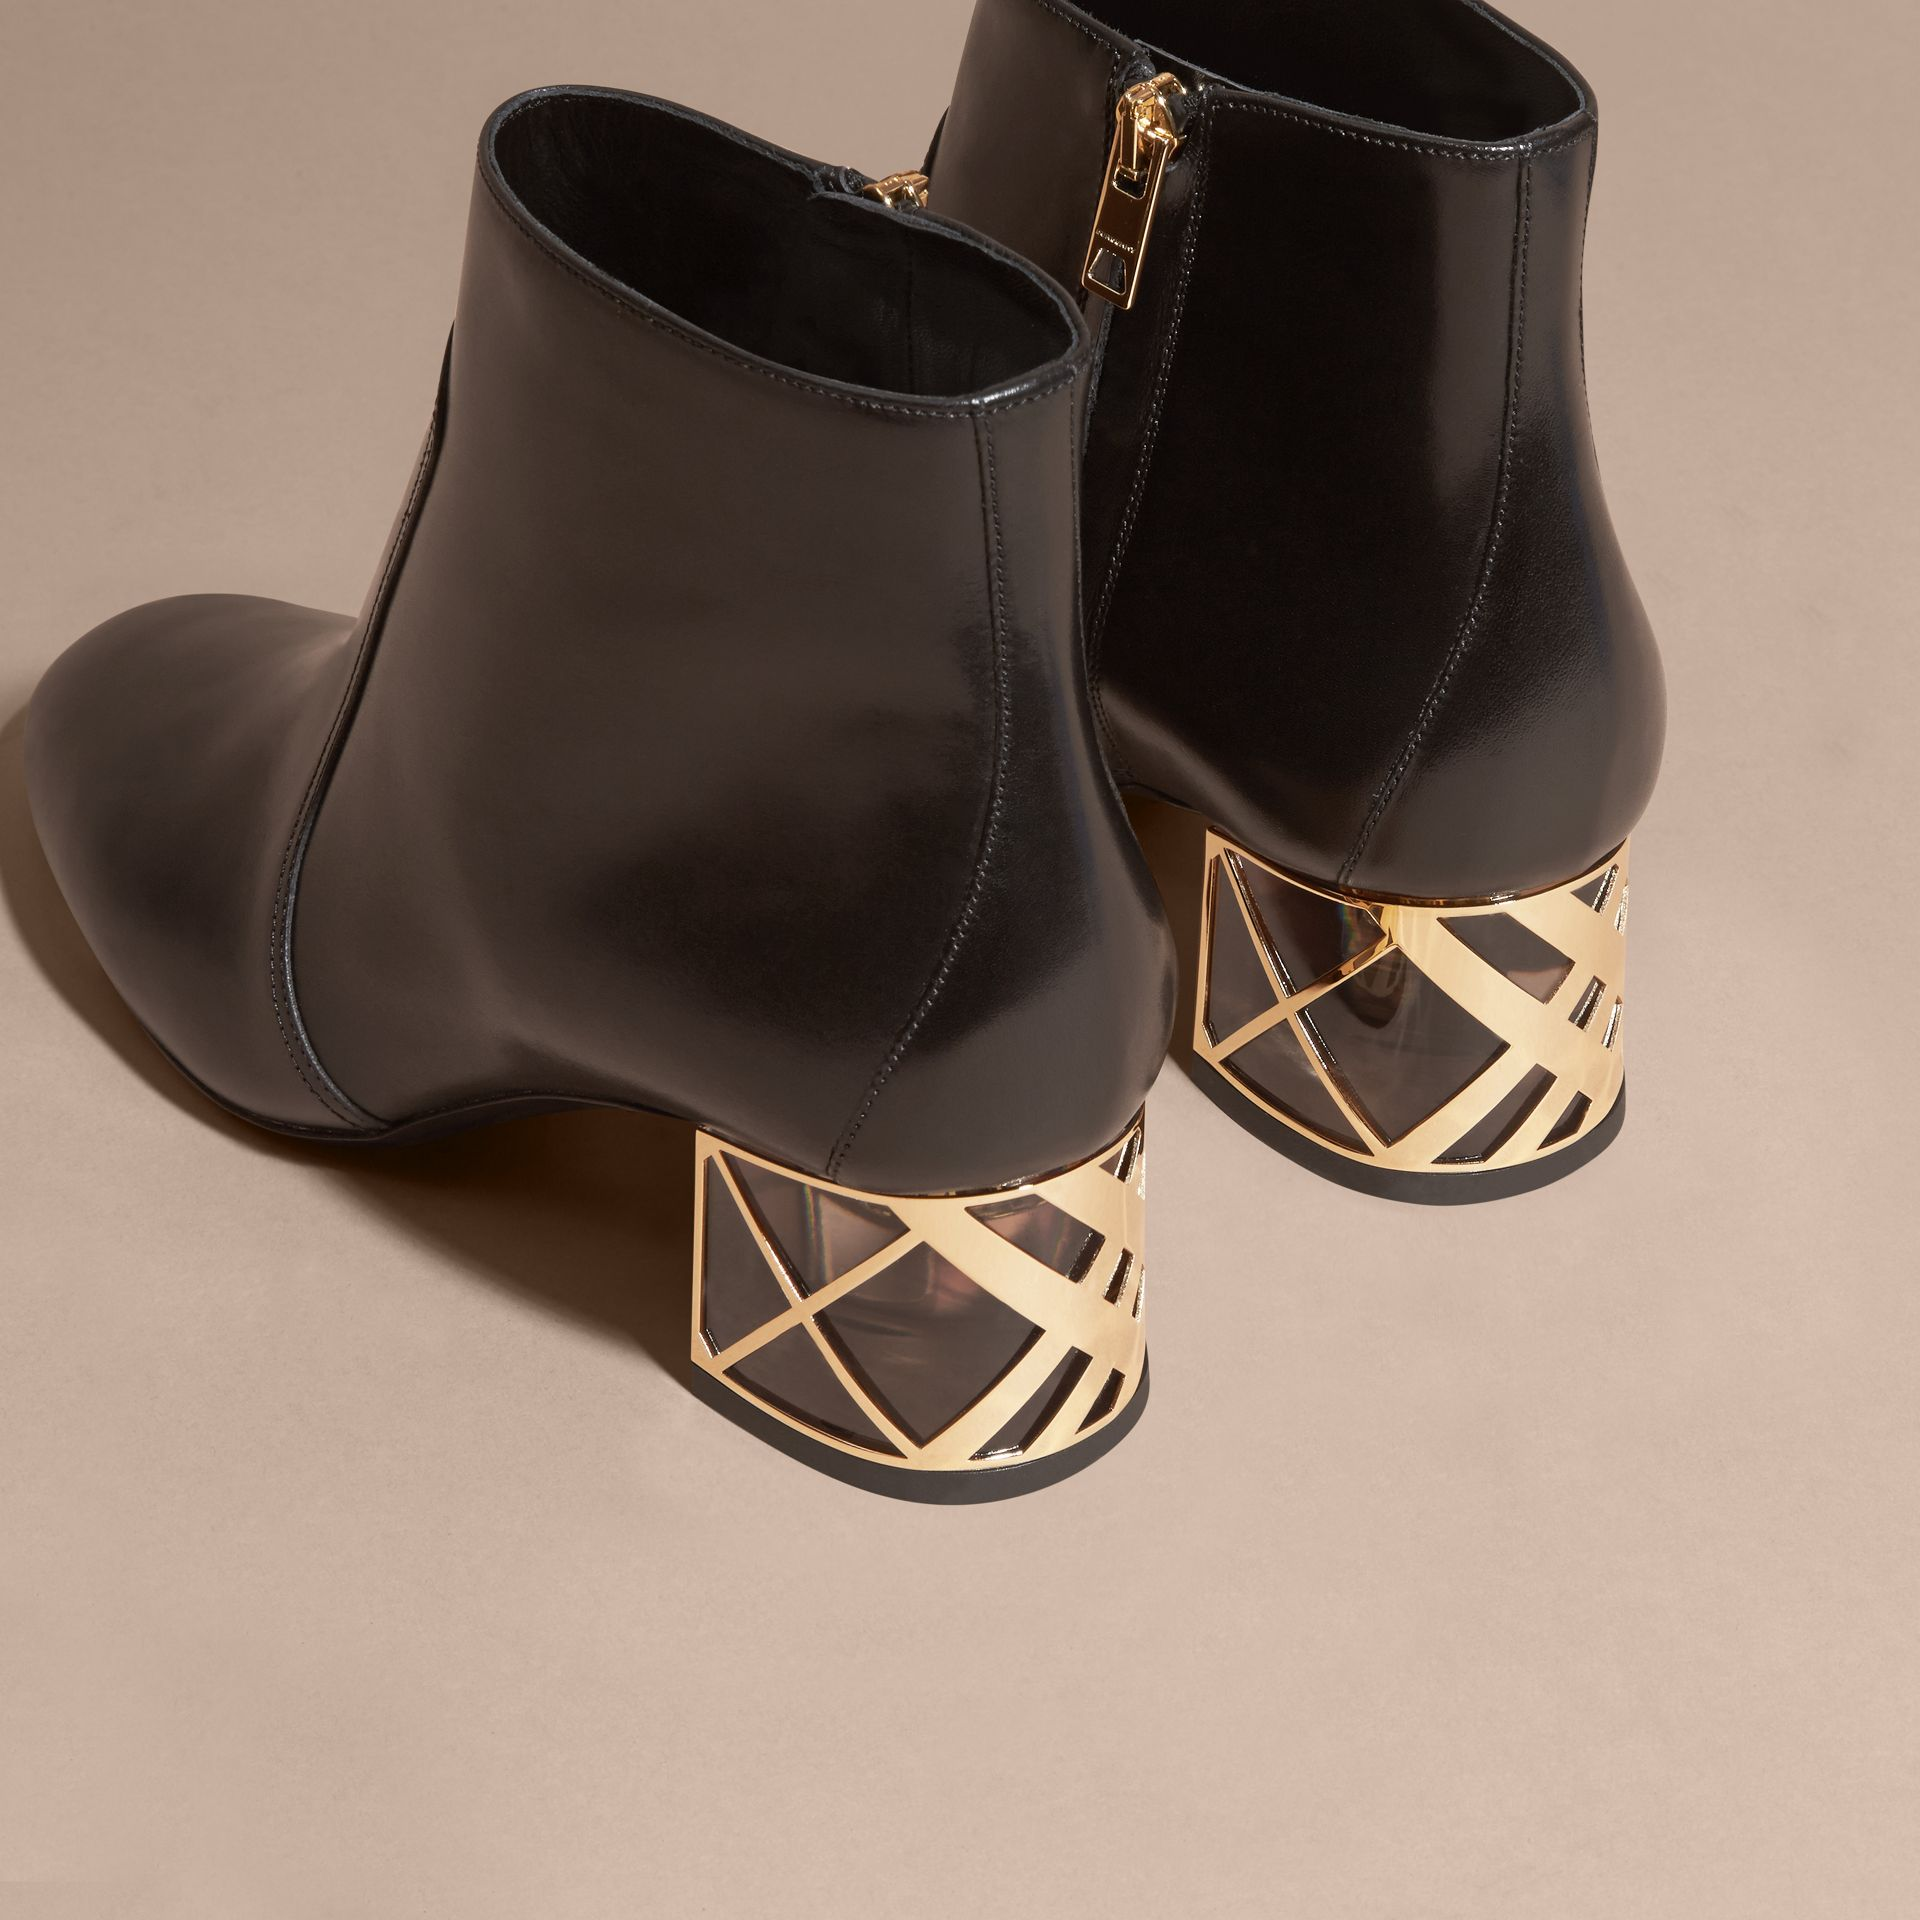 Noir Bottines en cuir avec motif check au talon Noir - photo de la galerie 4